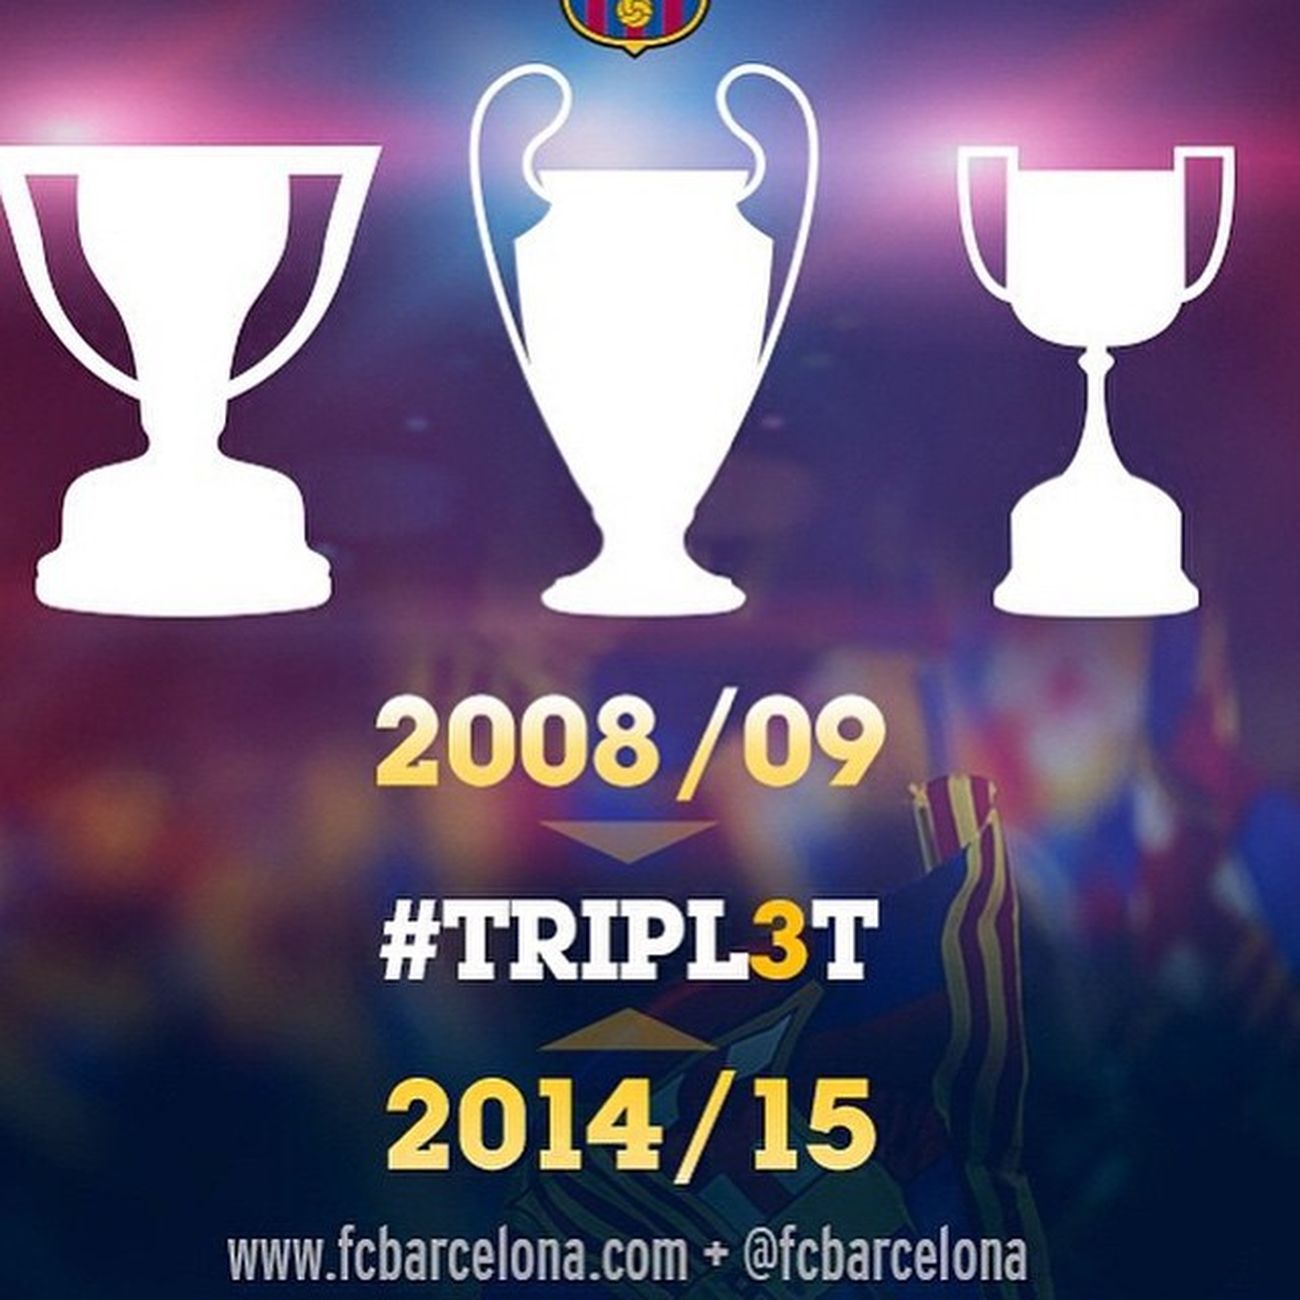 Historic 2ndTreble TRIPL3T <3